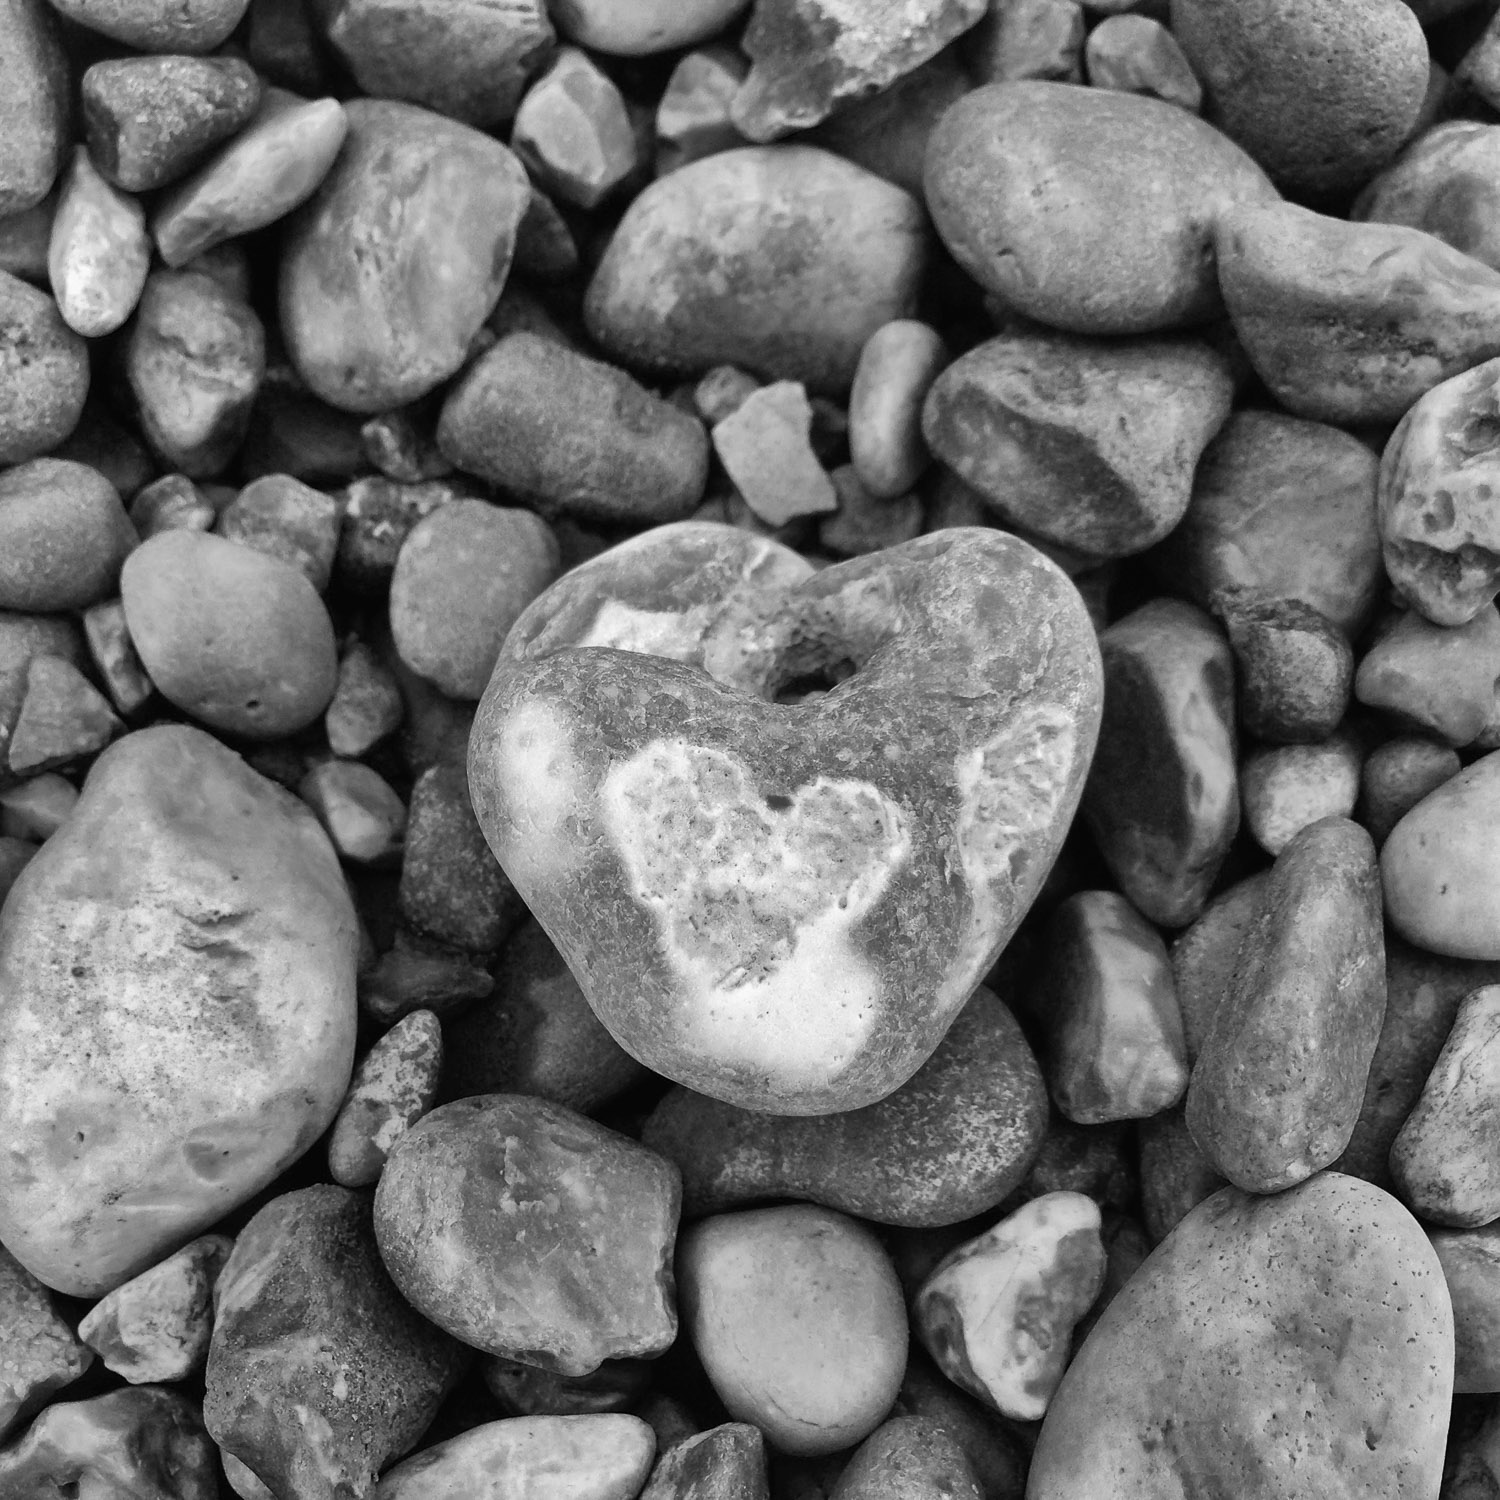 Heart pebble with hole